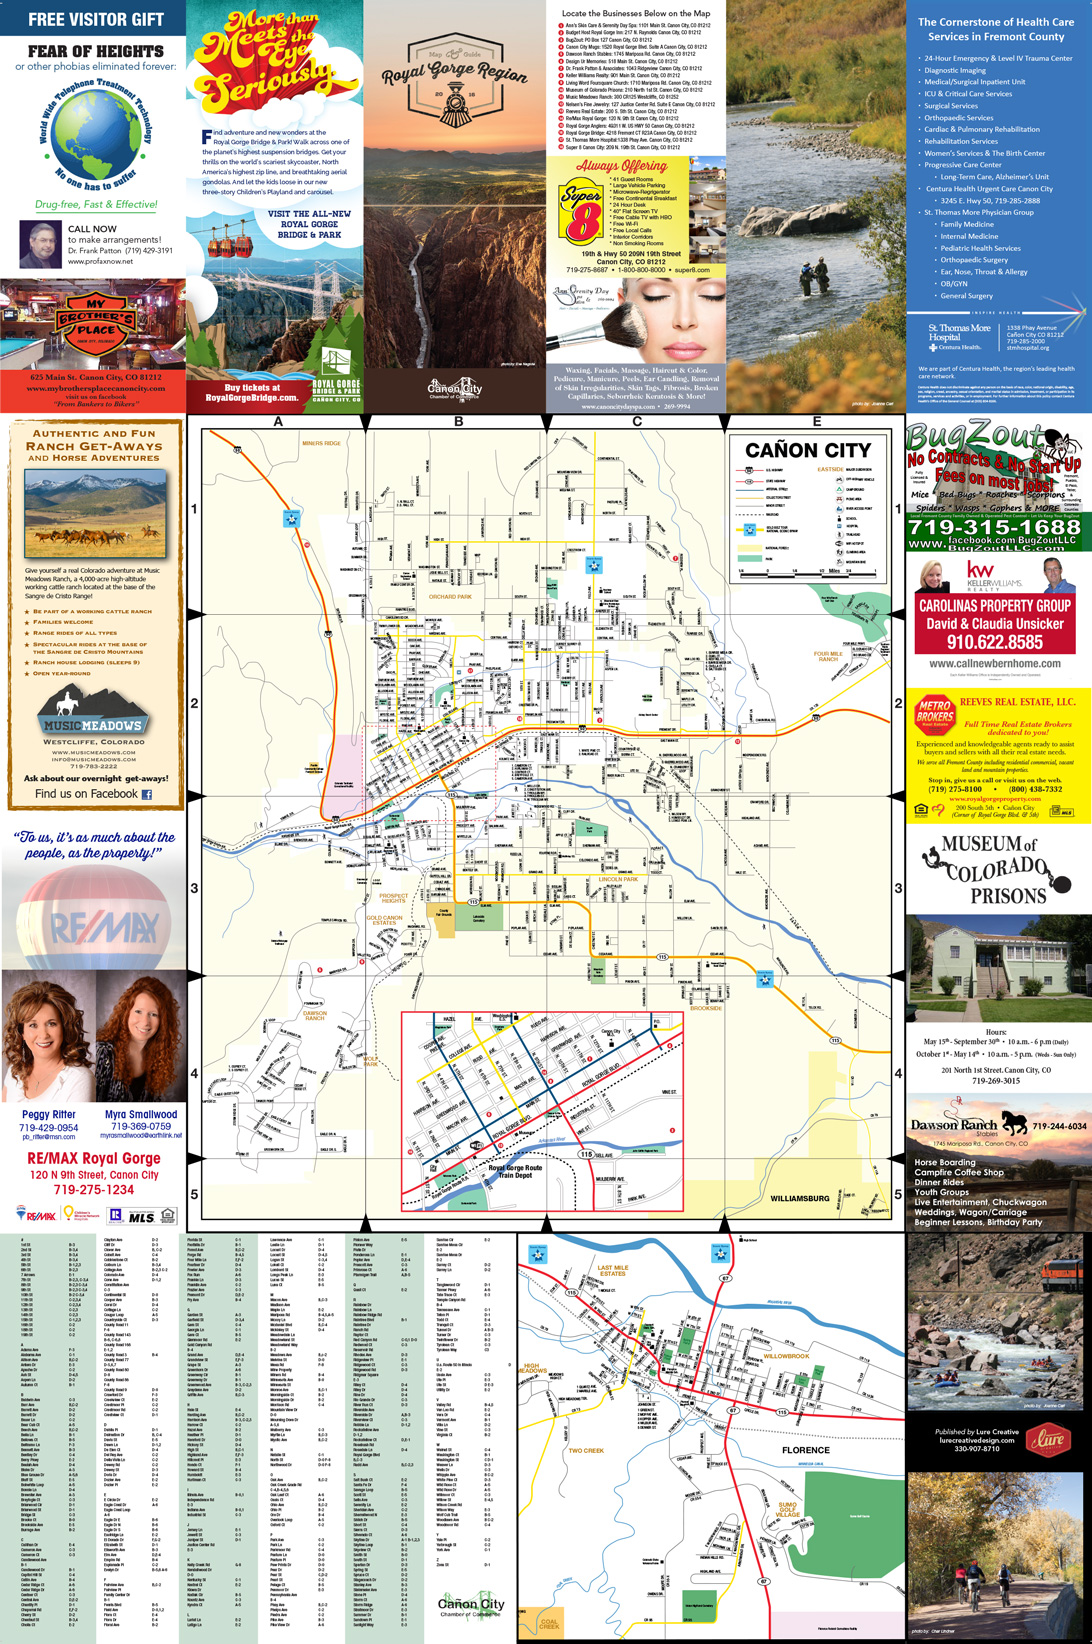 Canon City, Fremont County, CO Map - Lure Creative Design on